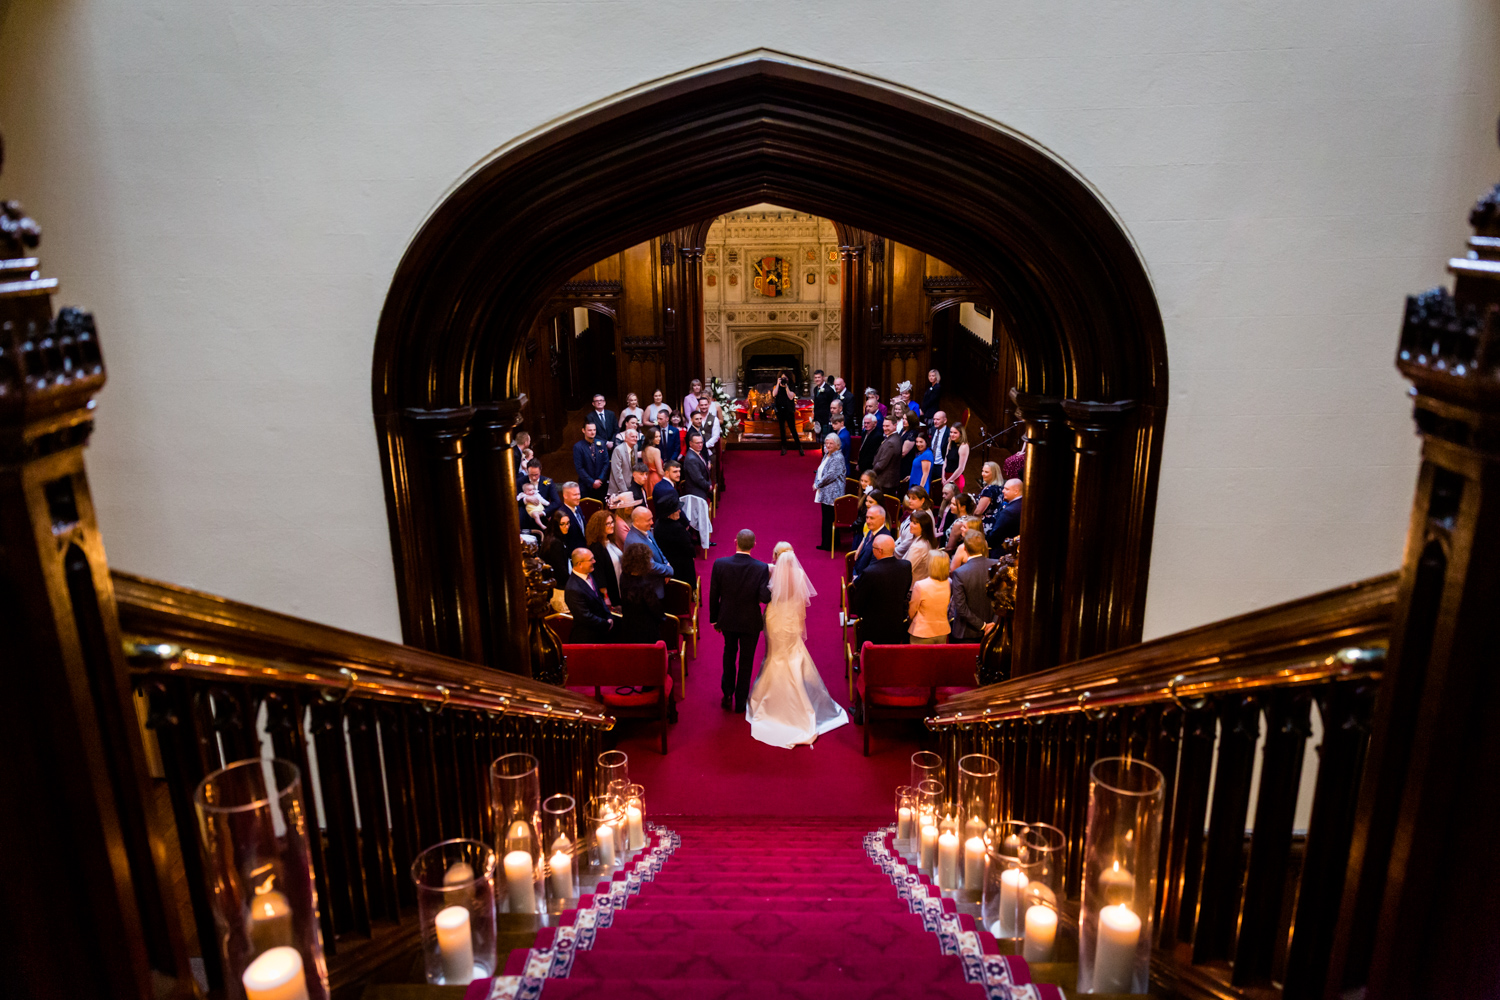 Allerton Castle Wedding Photography - Bride and her Dad walking down the grand staircase